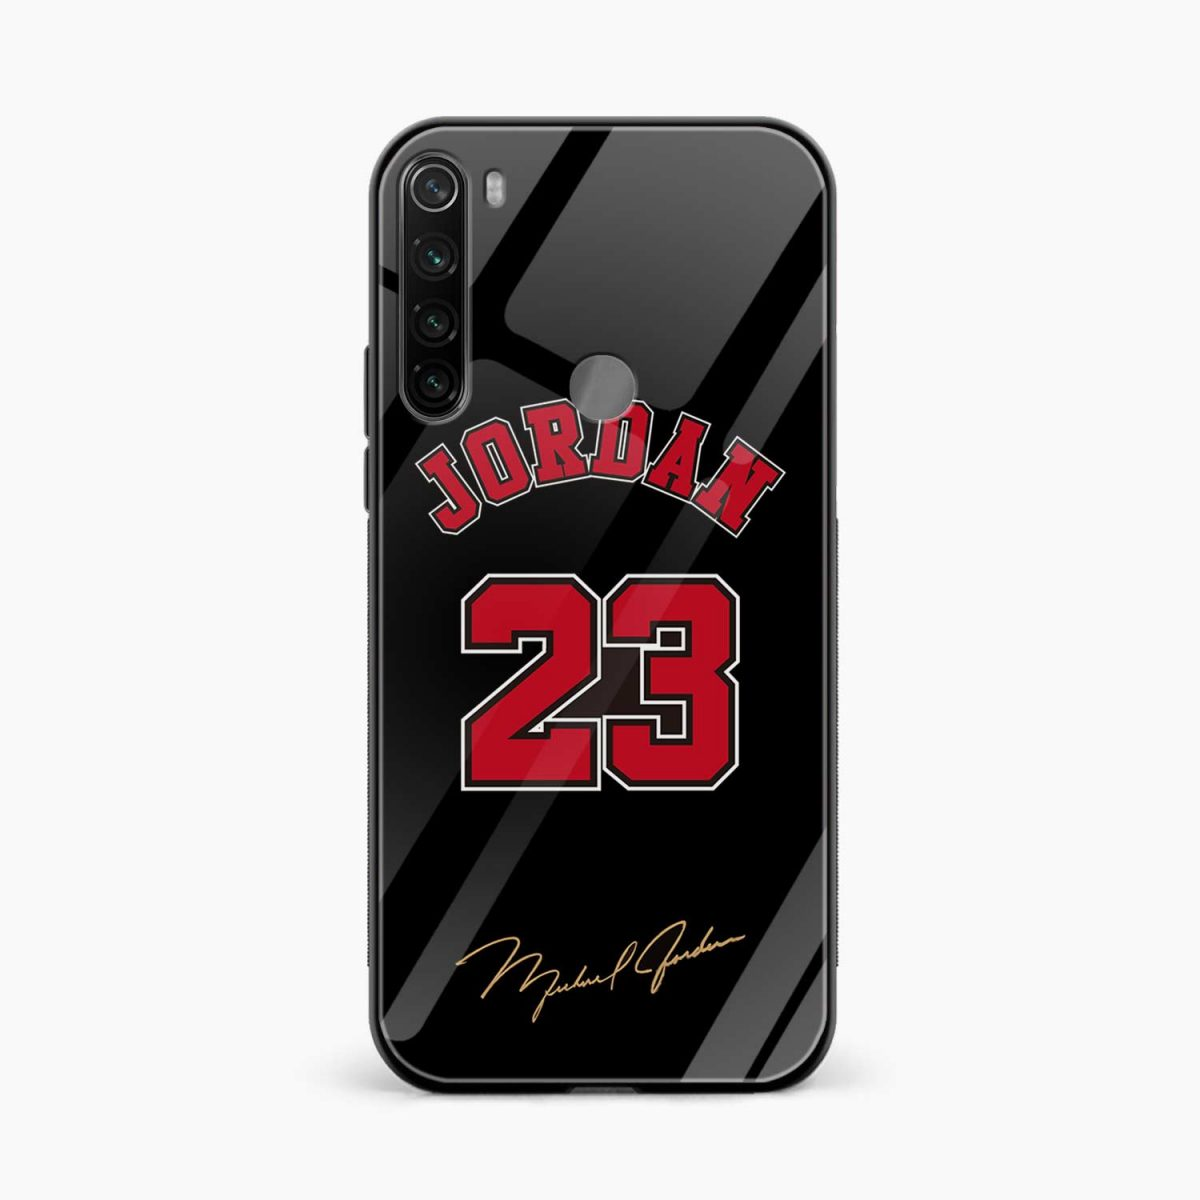 jordan 23 front view redmi note 8 back cover